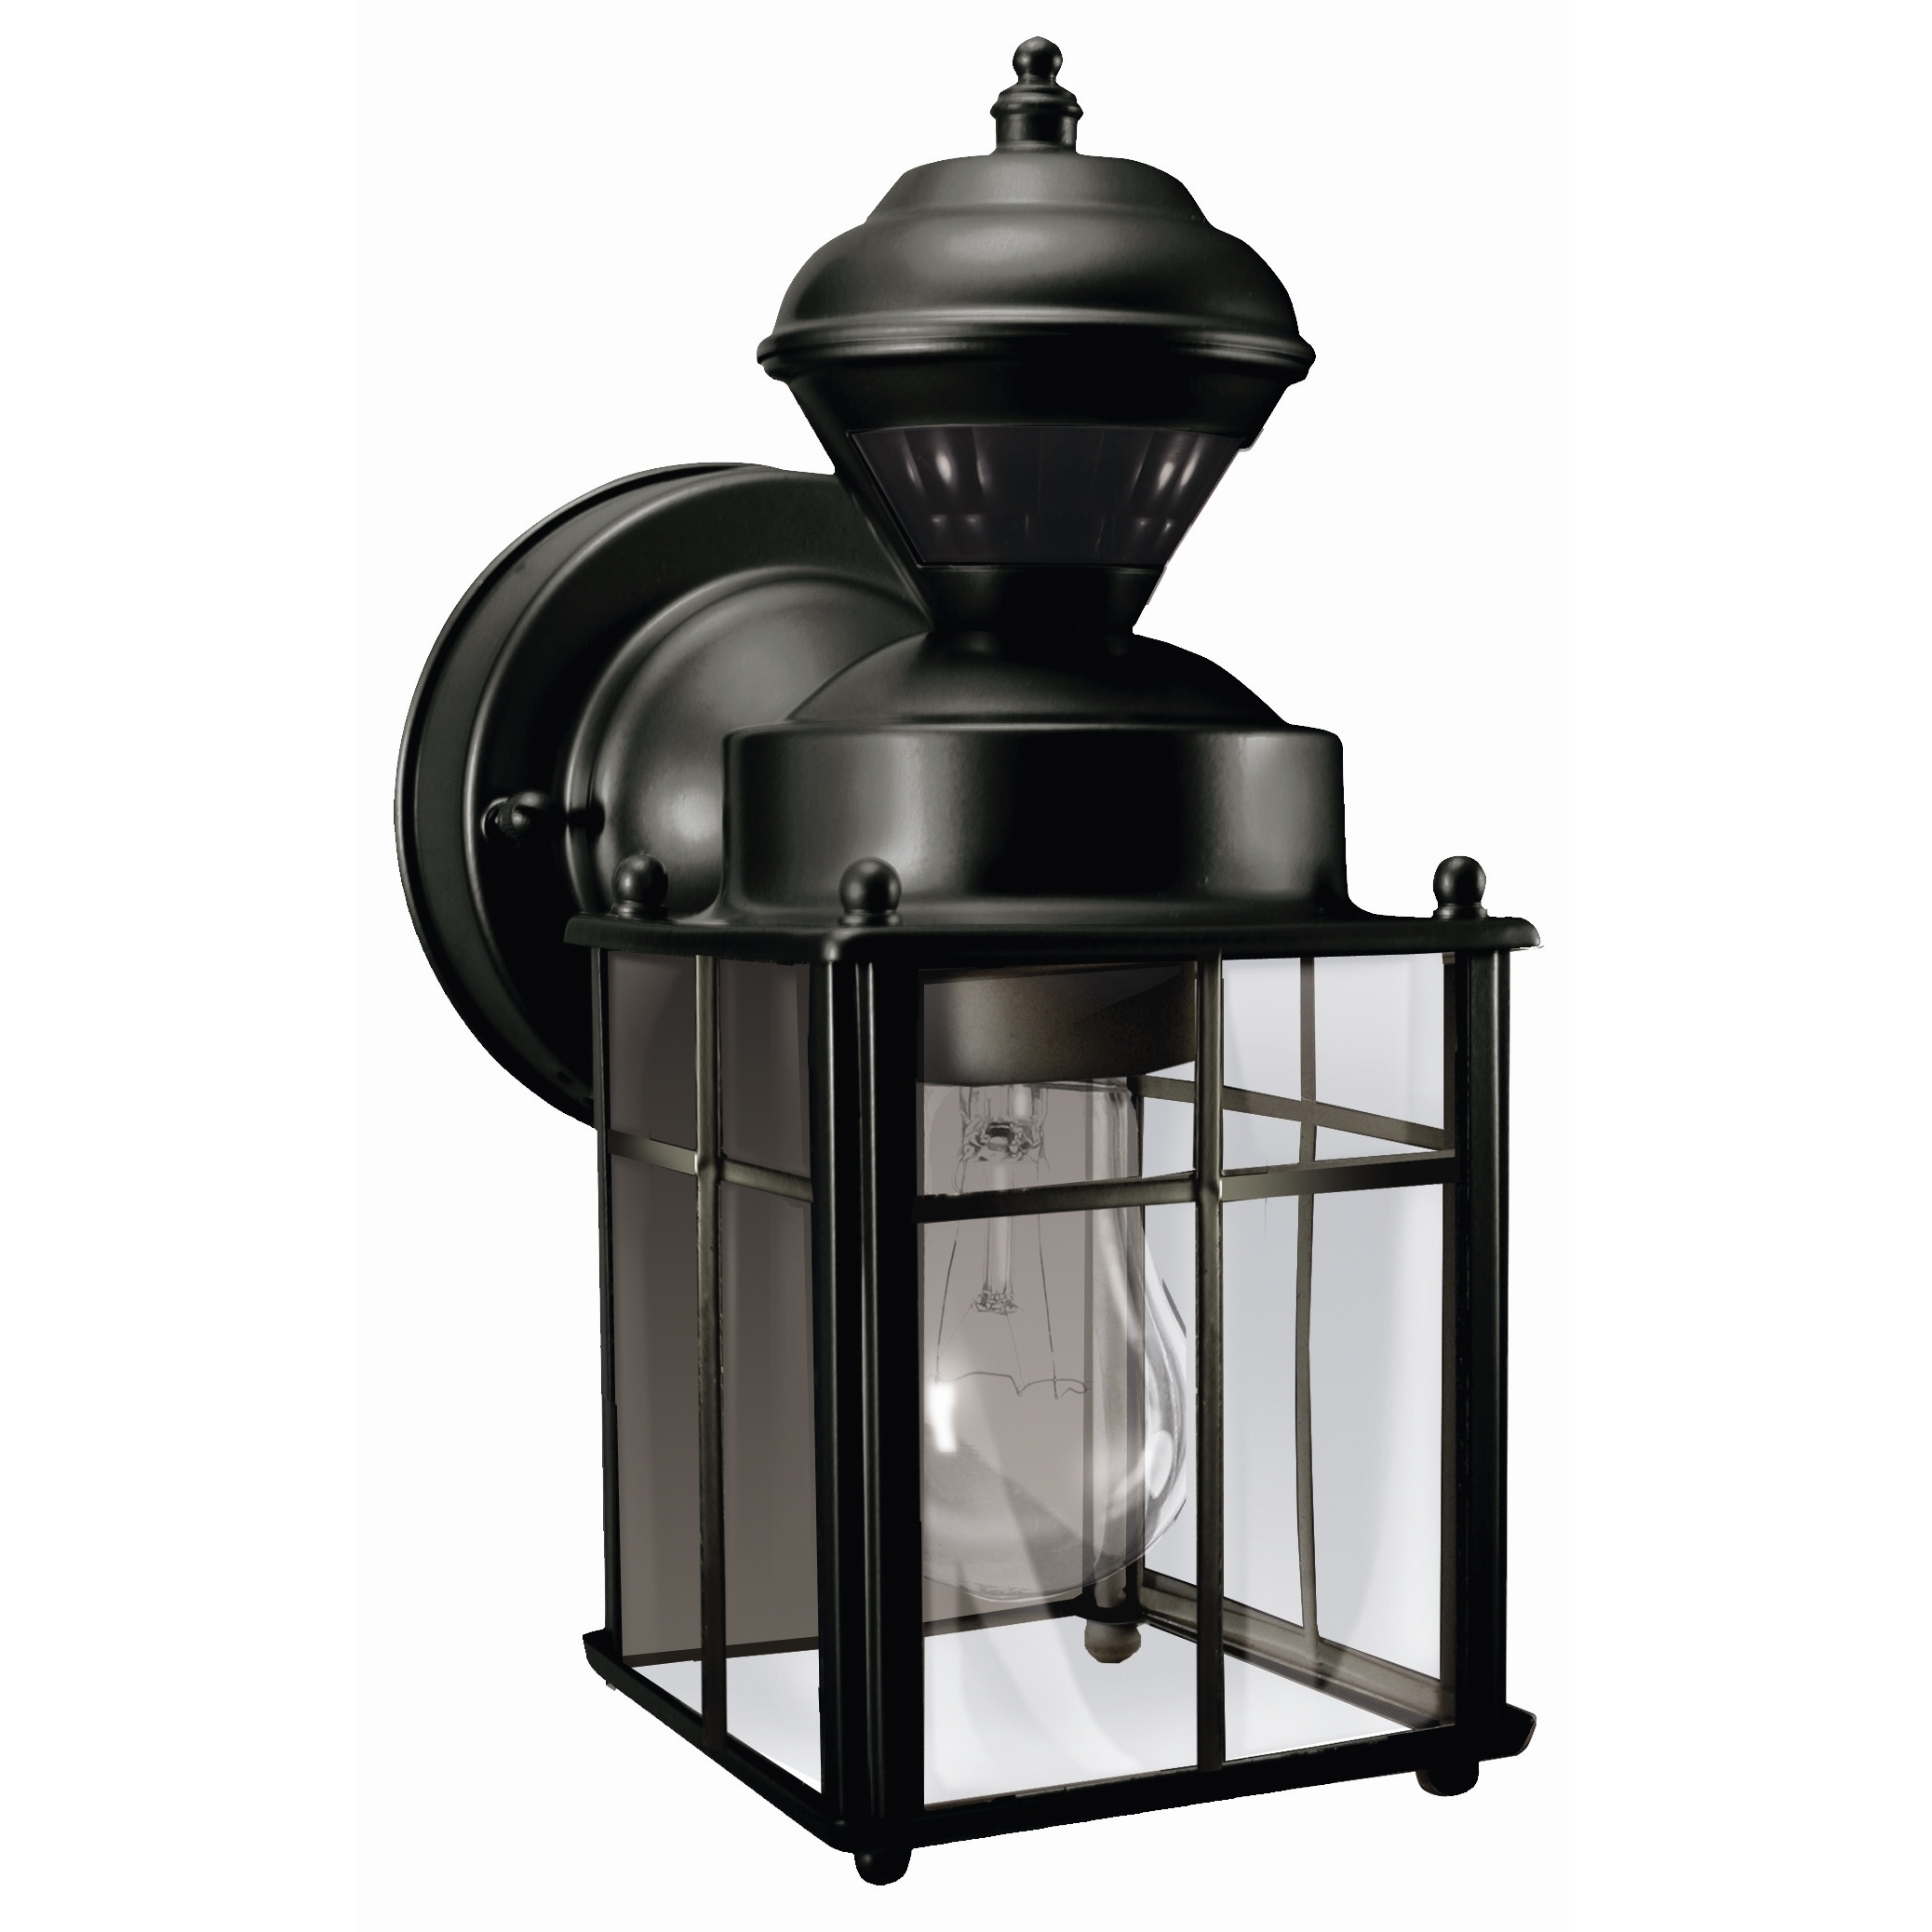 Widely Used Outdoor Wall Lighting Wayfair Olde Colony 2 Light Lantern ~ Clipgoo Regarding Contemporary Rustic Outdoor Lighting At Wayfair (View 20 of 20)